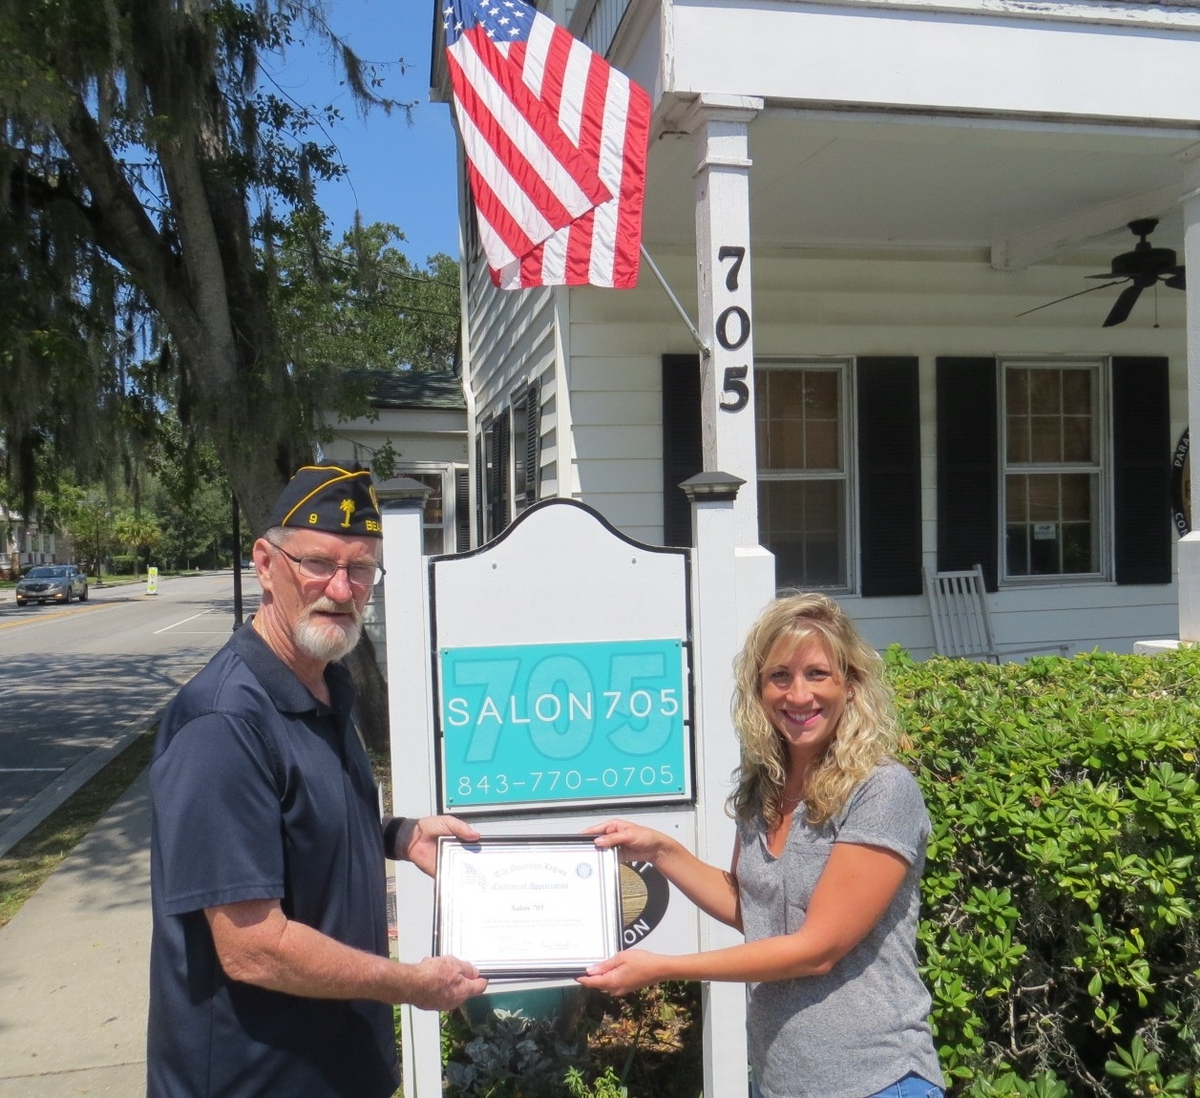 American Legion Beaufort Post 9 is striving to promote both patriotism and businesses in the Beaufort area by calling attention to those that proudly display the U.S. flag at their location. Post 9 presents those enterprises with a framed certificate thanking them. Here, Post 9 Vice Commander Paul Sweet presents Salon 705 owner Jennifer Whetsel a certificate of appreciation for displaying the flag.